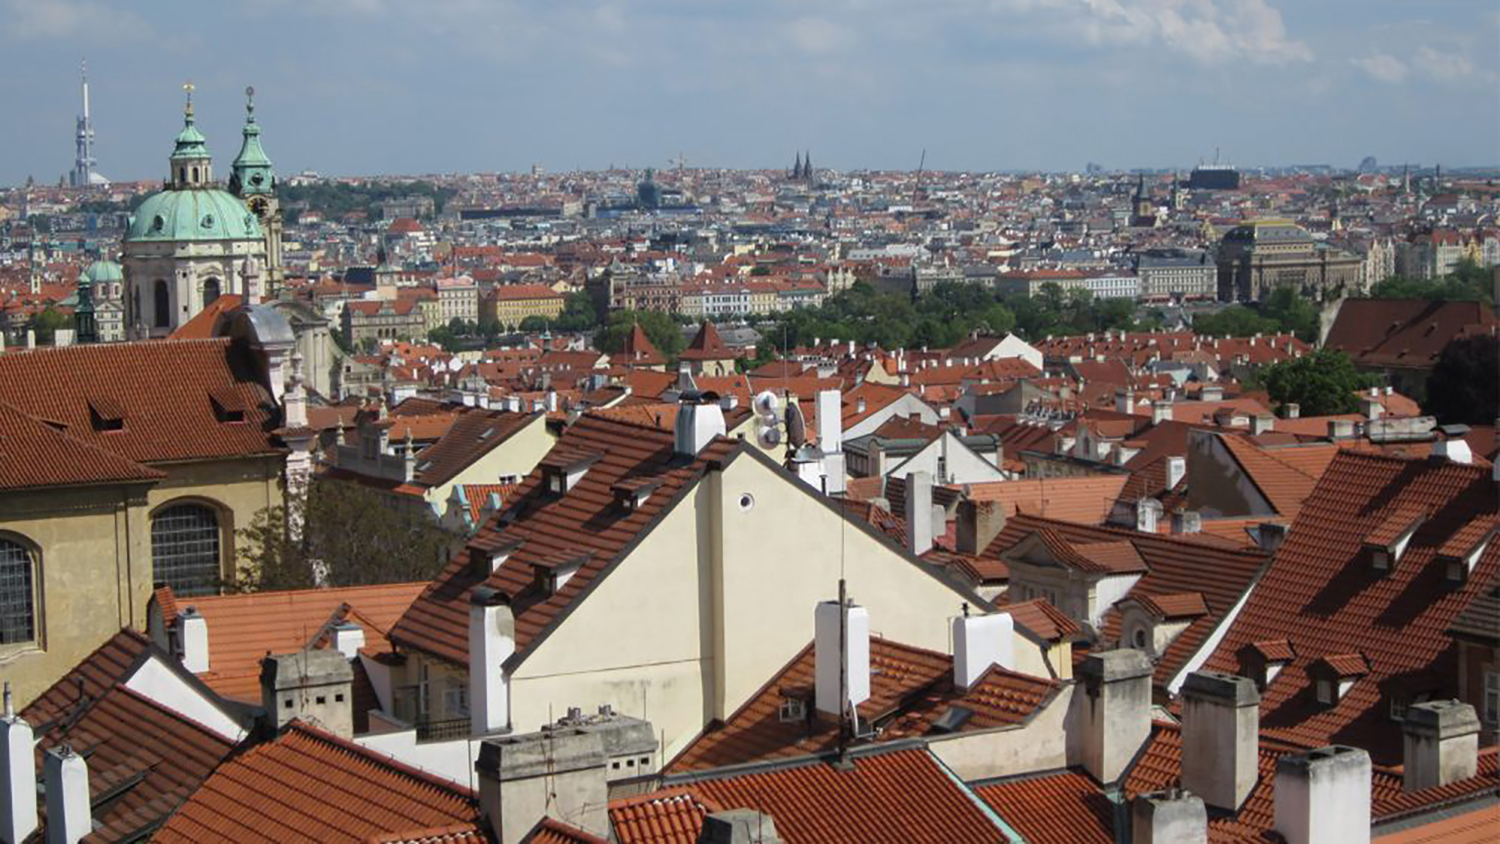 Skyline of the city of Prague, Czech Republic